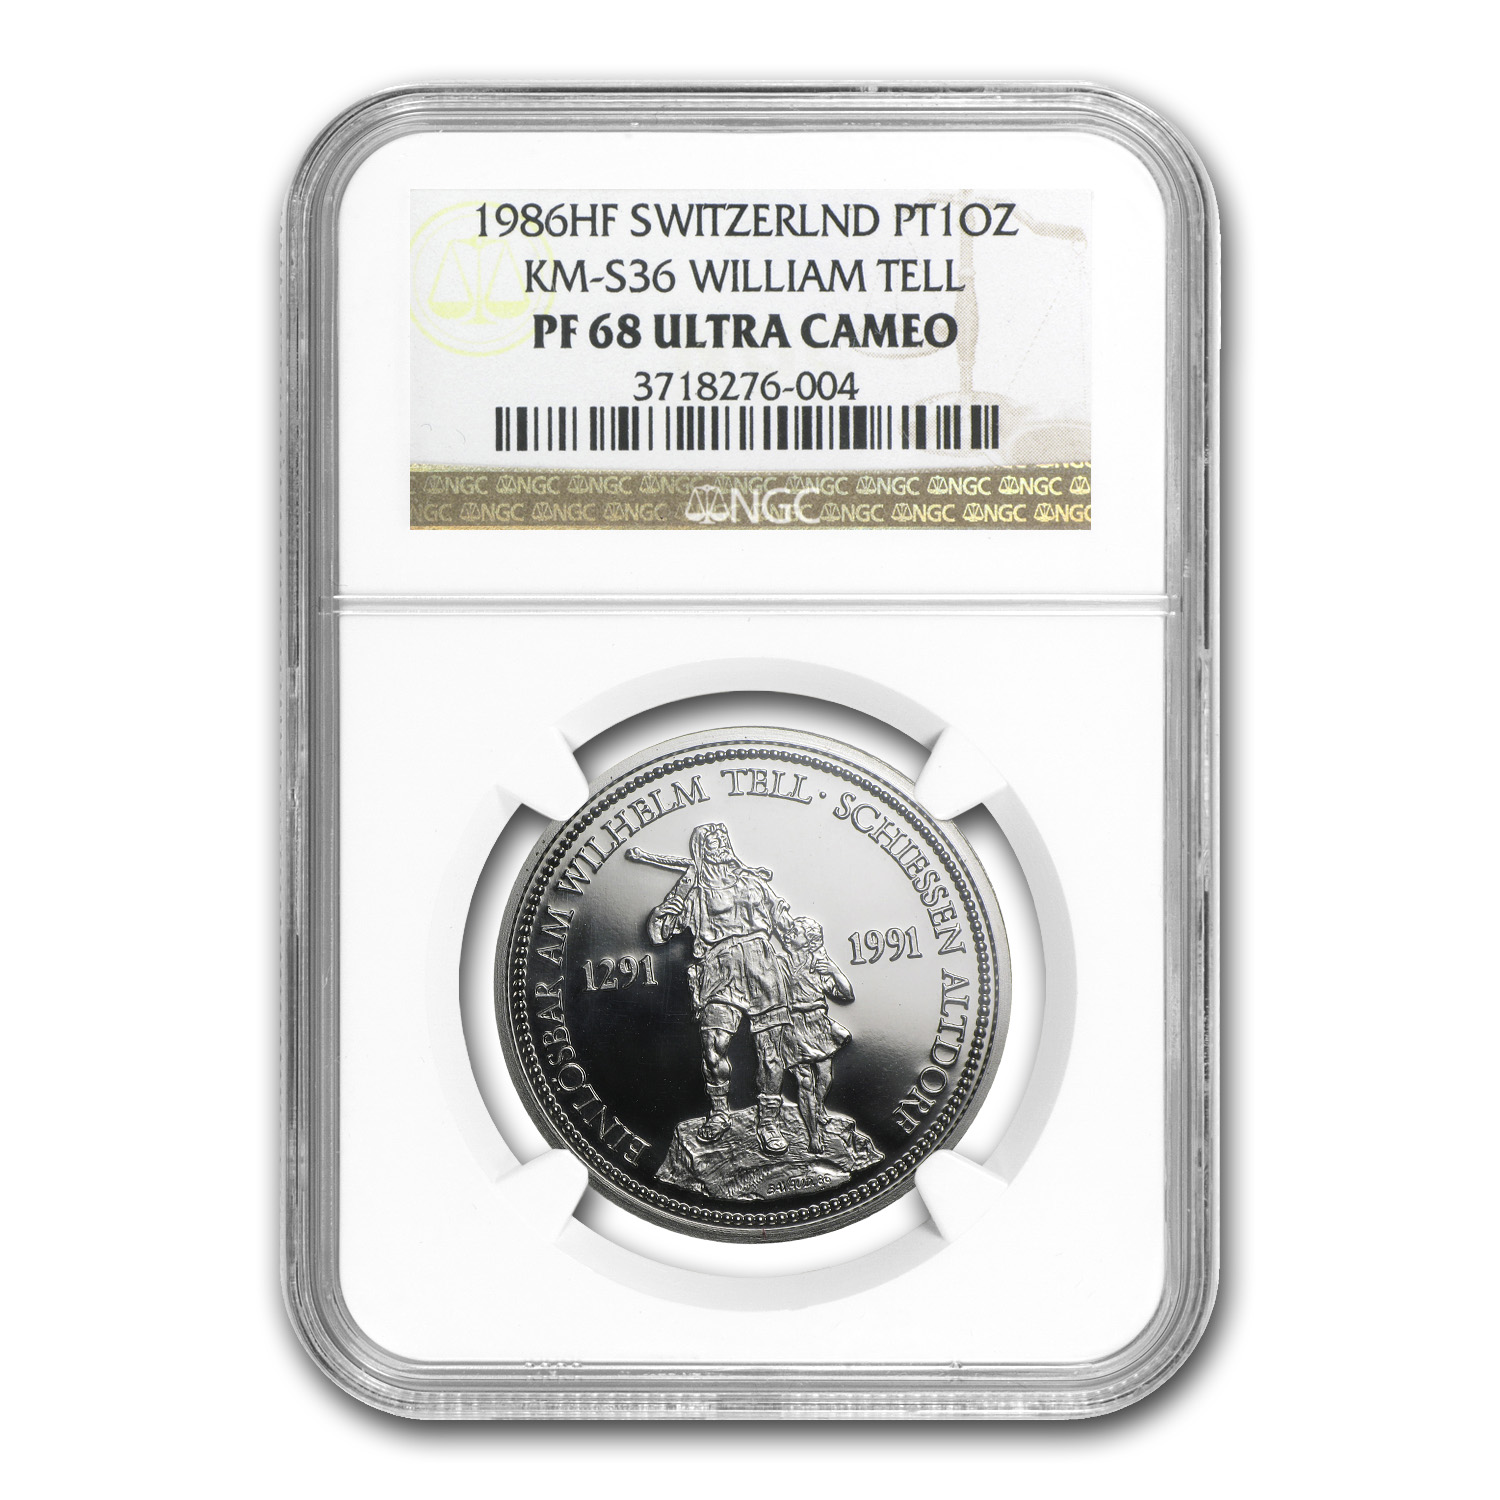 1986 Switzerland 1 oz Proof Platinum Shooting Thaler PF-68 NGC